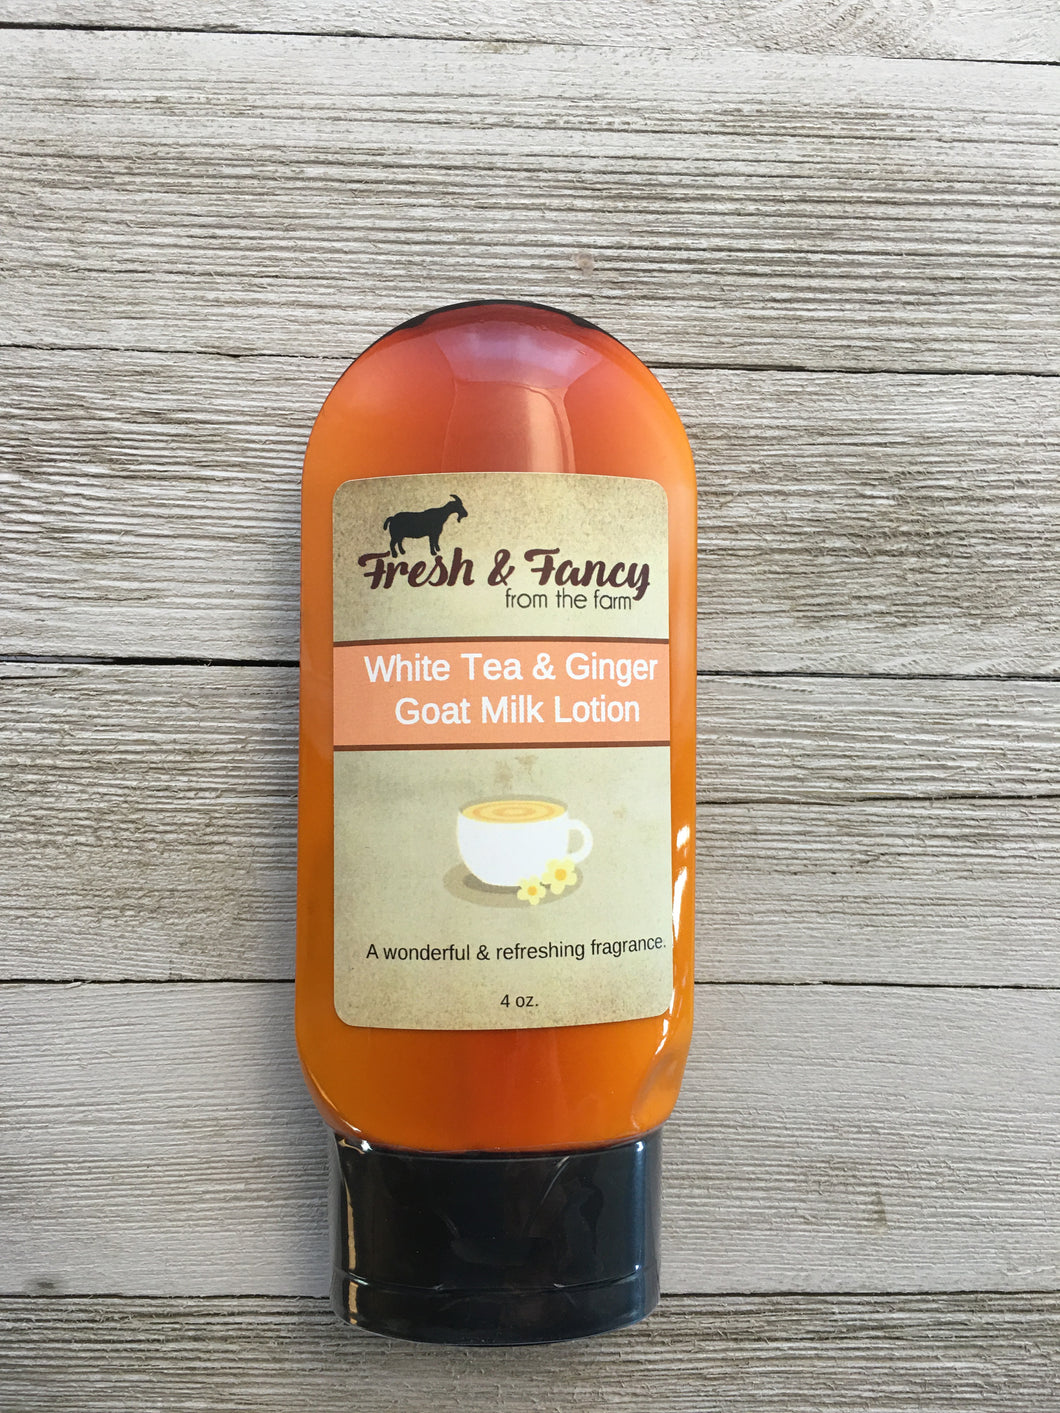 White Tea & Ginger - Goat Milk Lotion 4 oz. tube